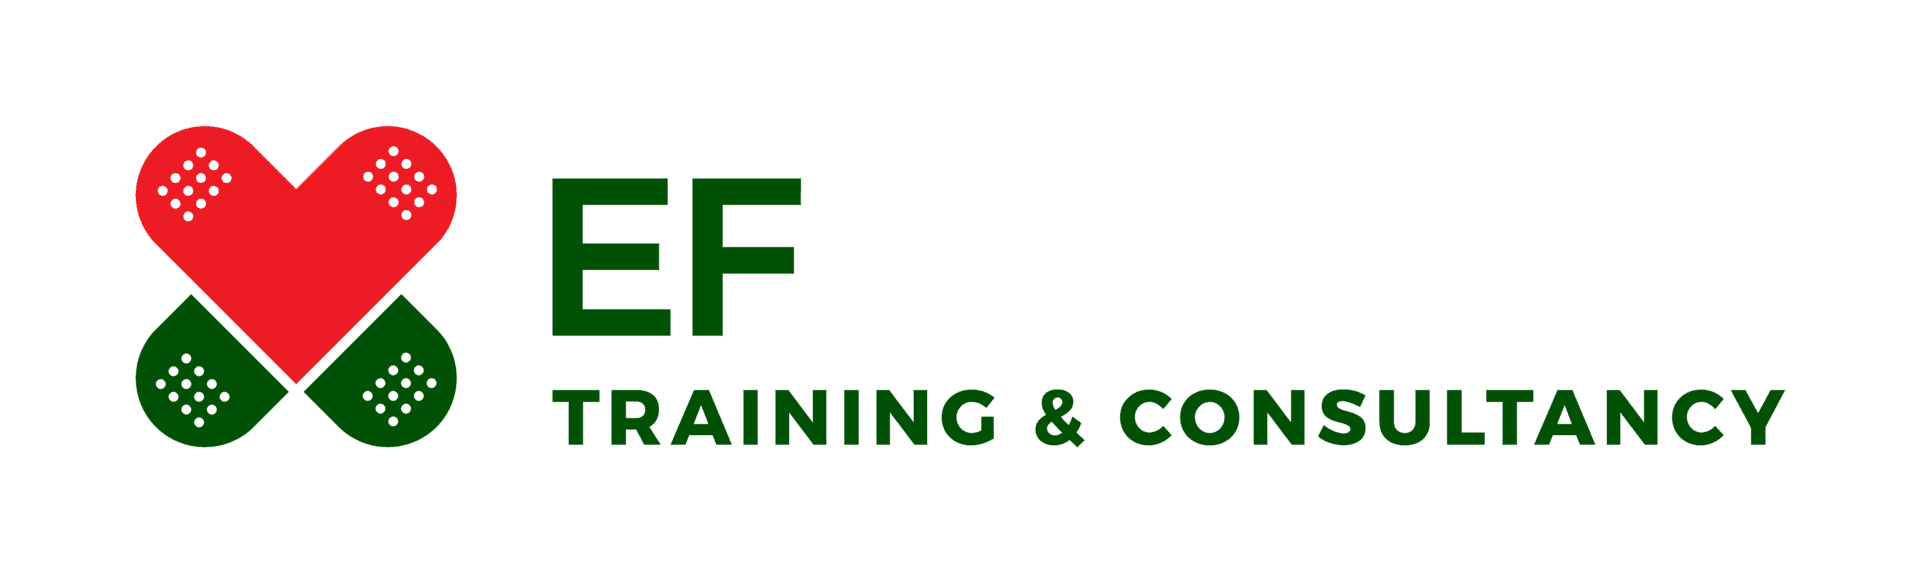 ef training and consultancy